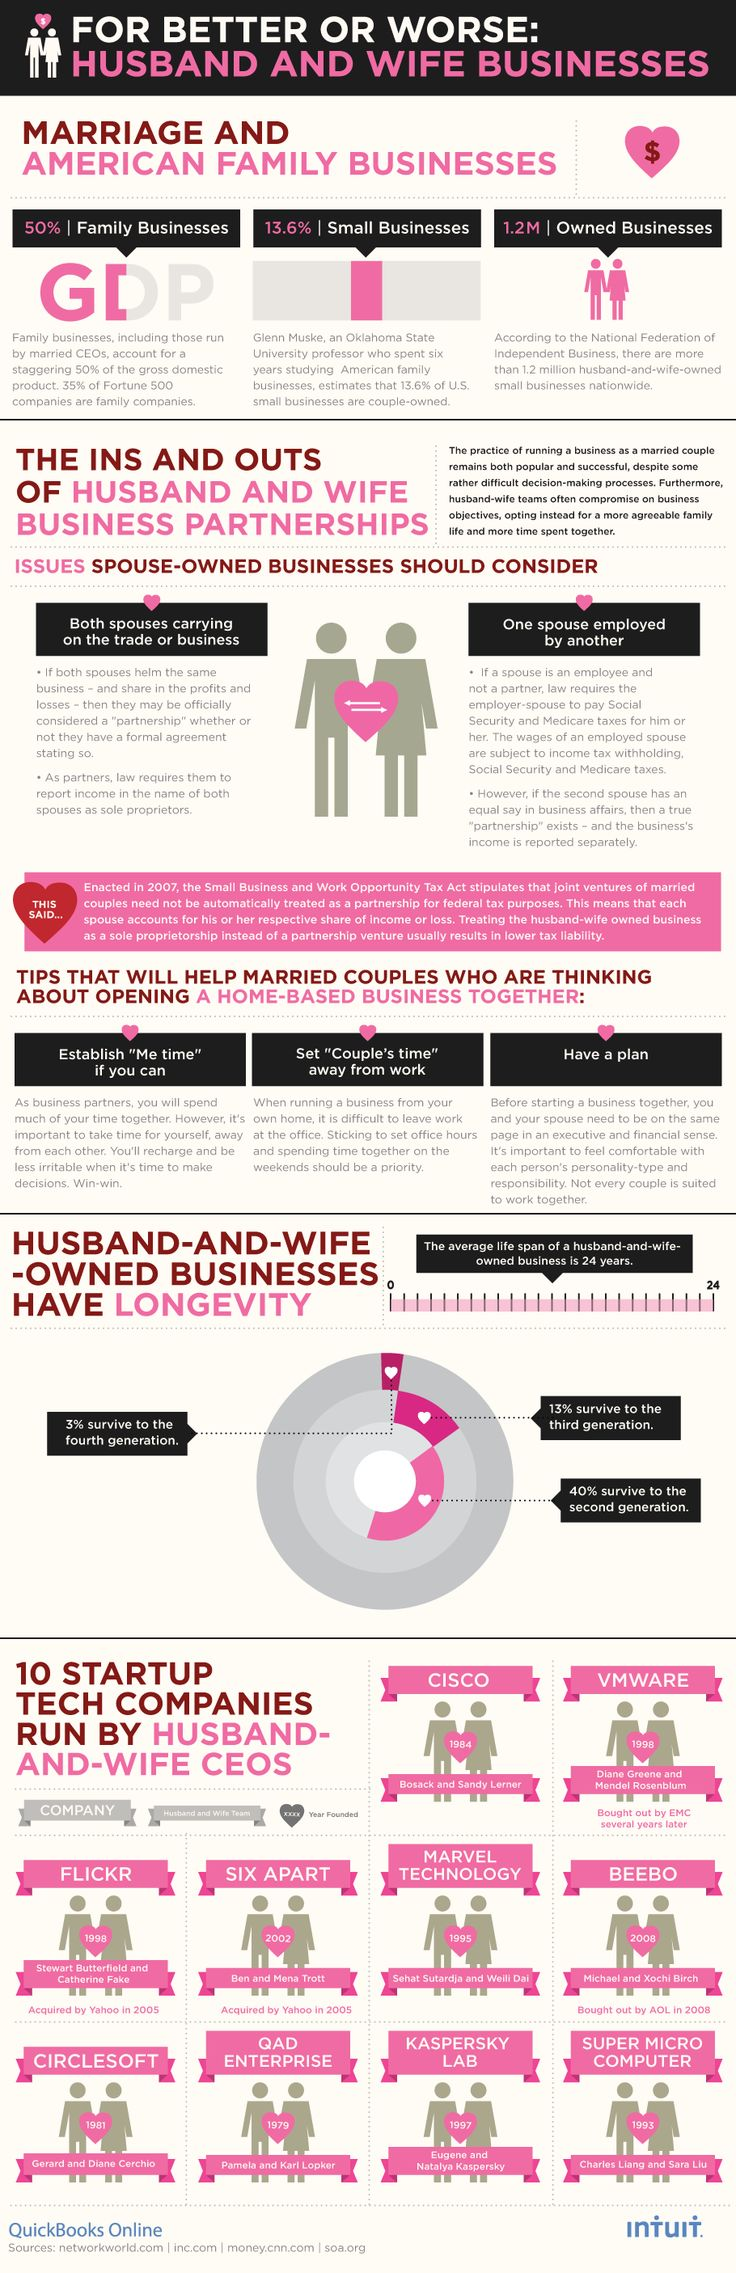 For Better or For Worse: Husband and Wife Businesses [INFOGRAPHIC]  by Monica Appelbe on February 14, 2011  The idea of starting a family business appeals to many entrepreneurs. We know this because 90 percent of the 21 million small businesses in America are family owned, according to the Small Business Administration.